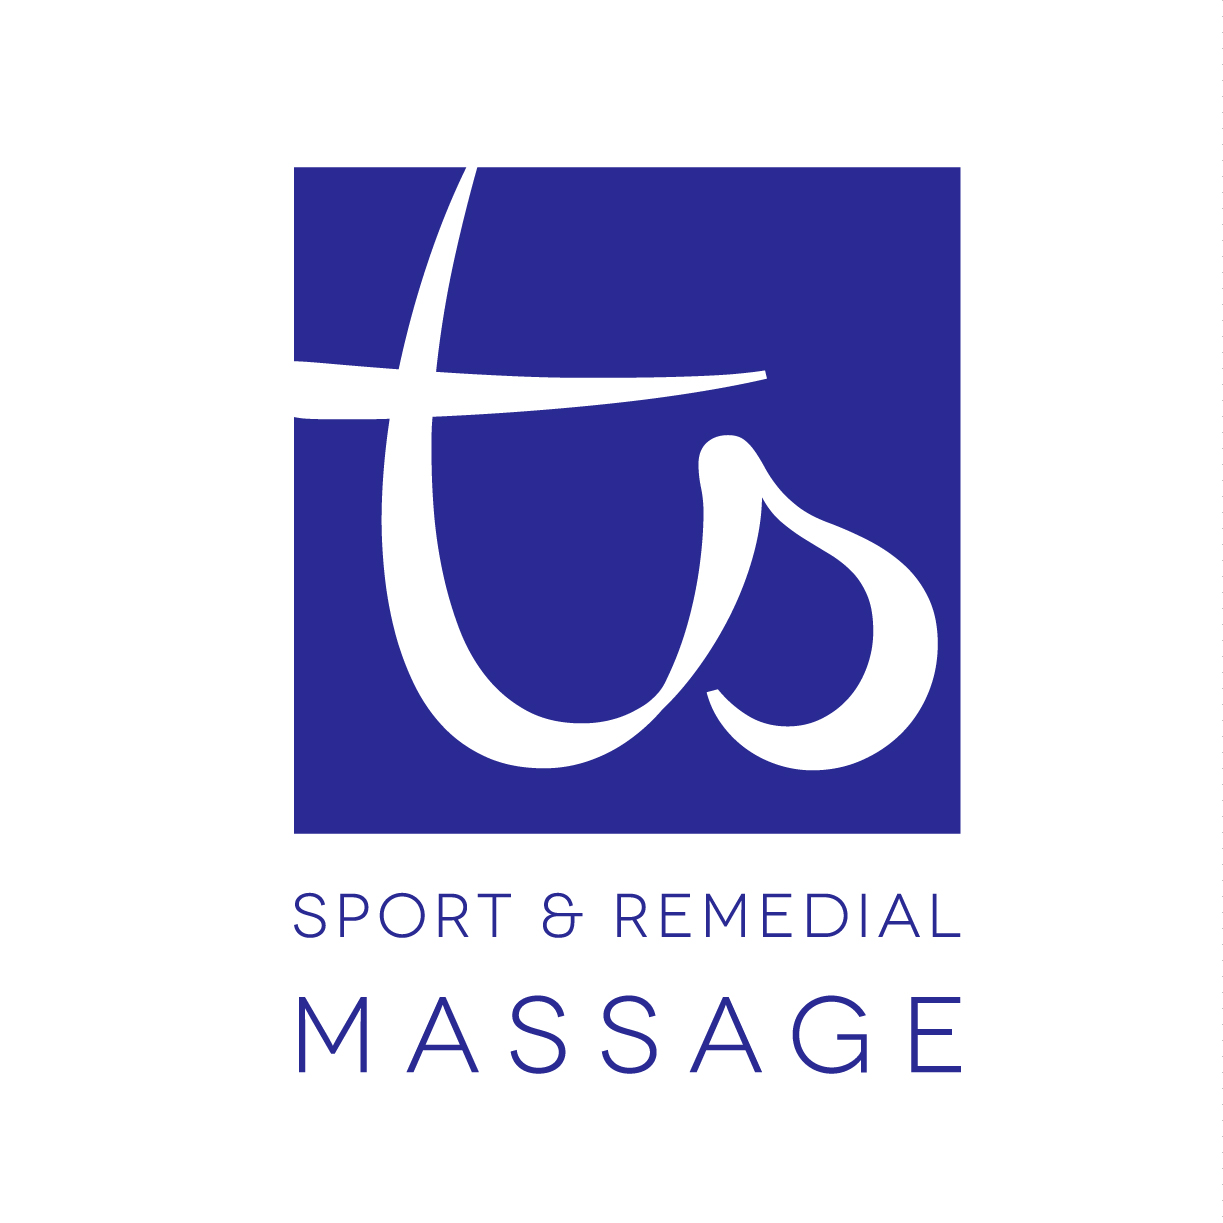 Tom provides sports massage to elite atheletes of the highest standard.